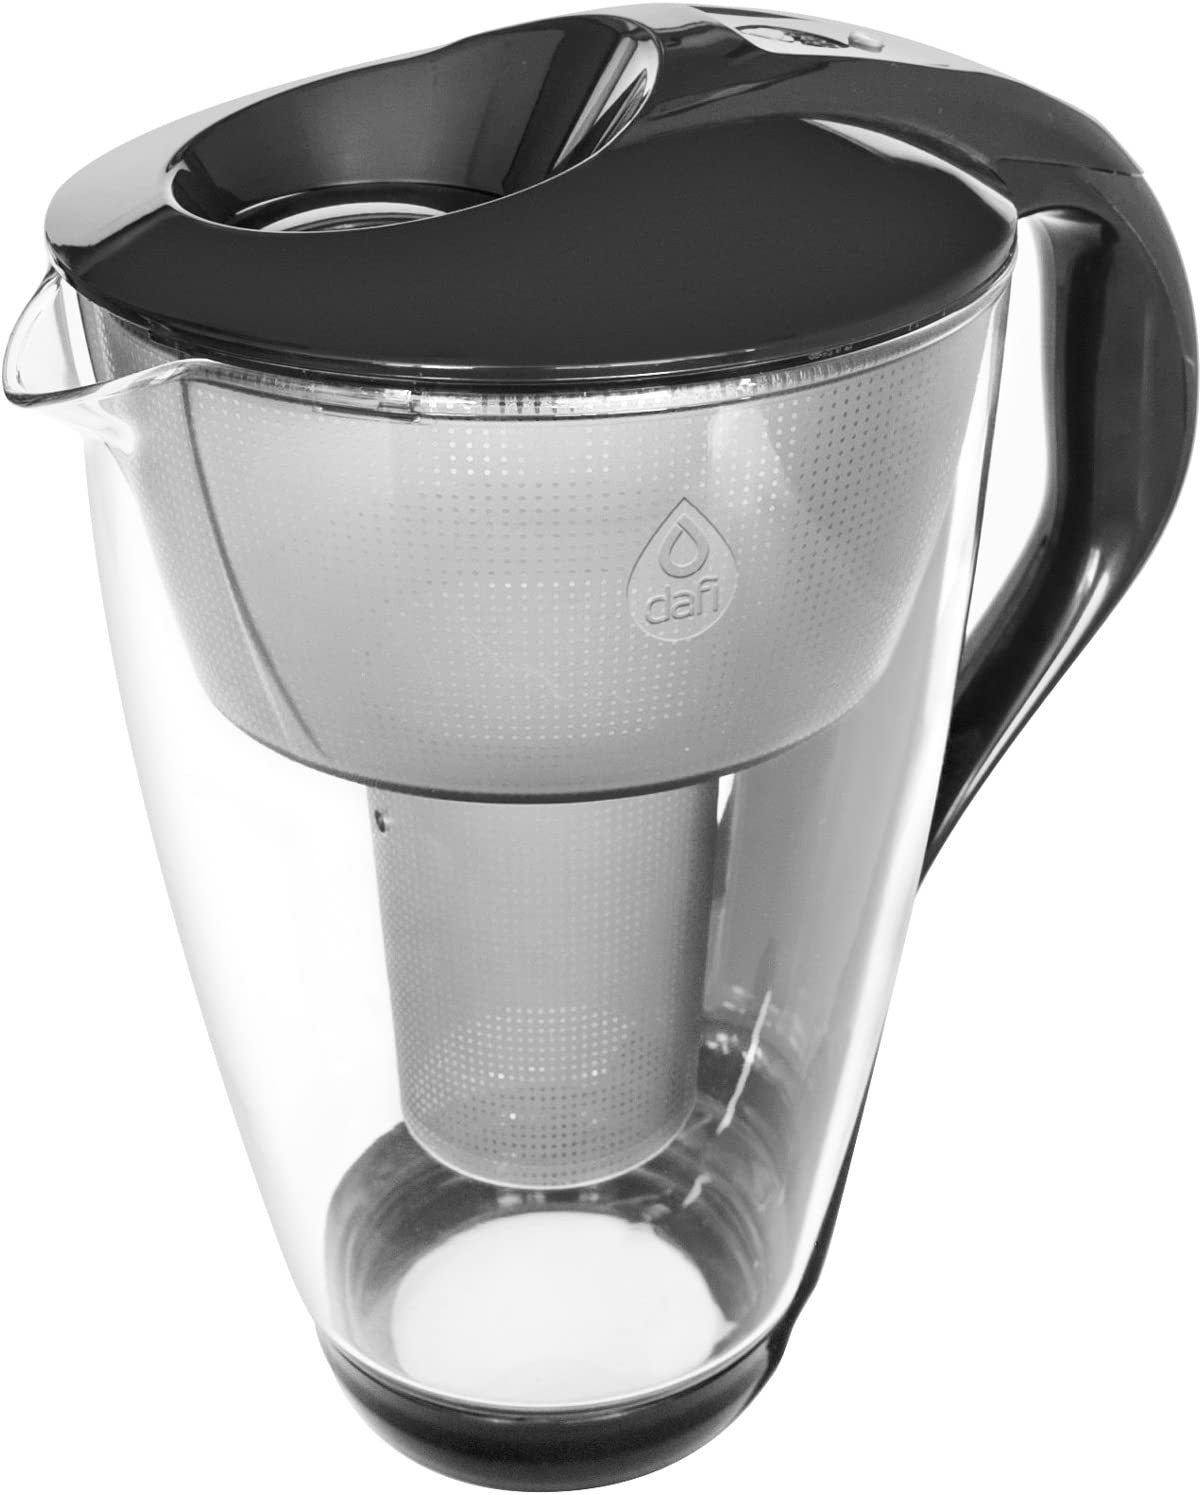 Dafi 8 Cup BPA-Free Water Filter Pitcher